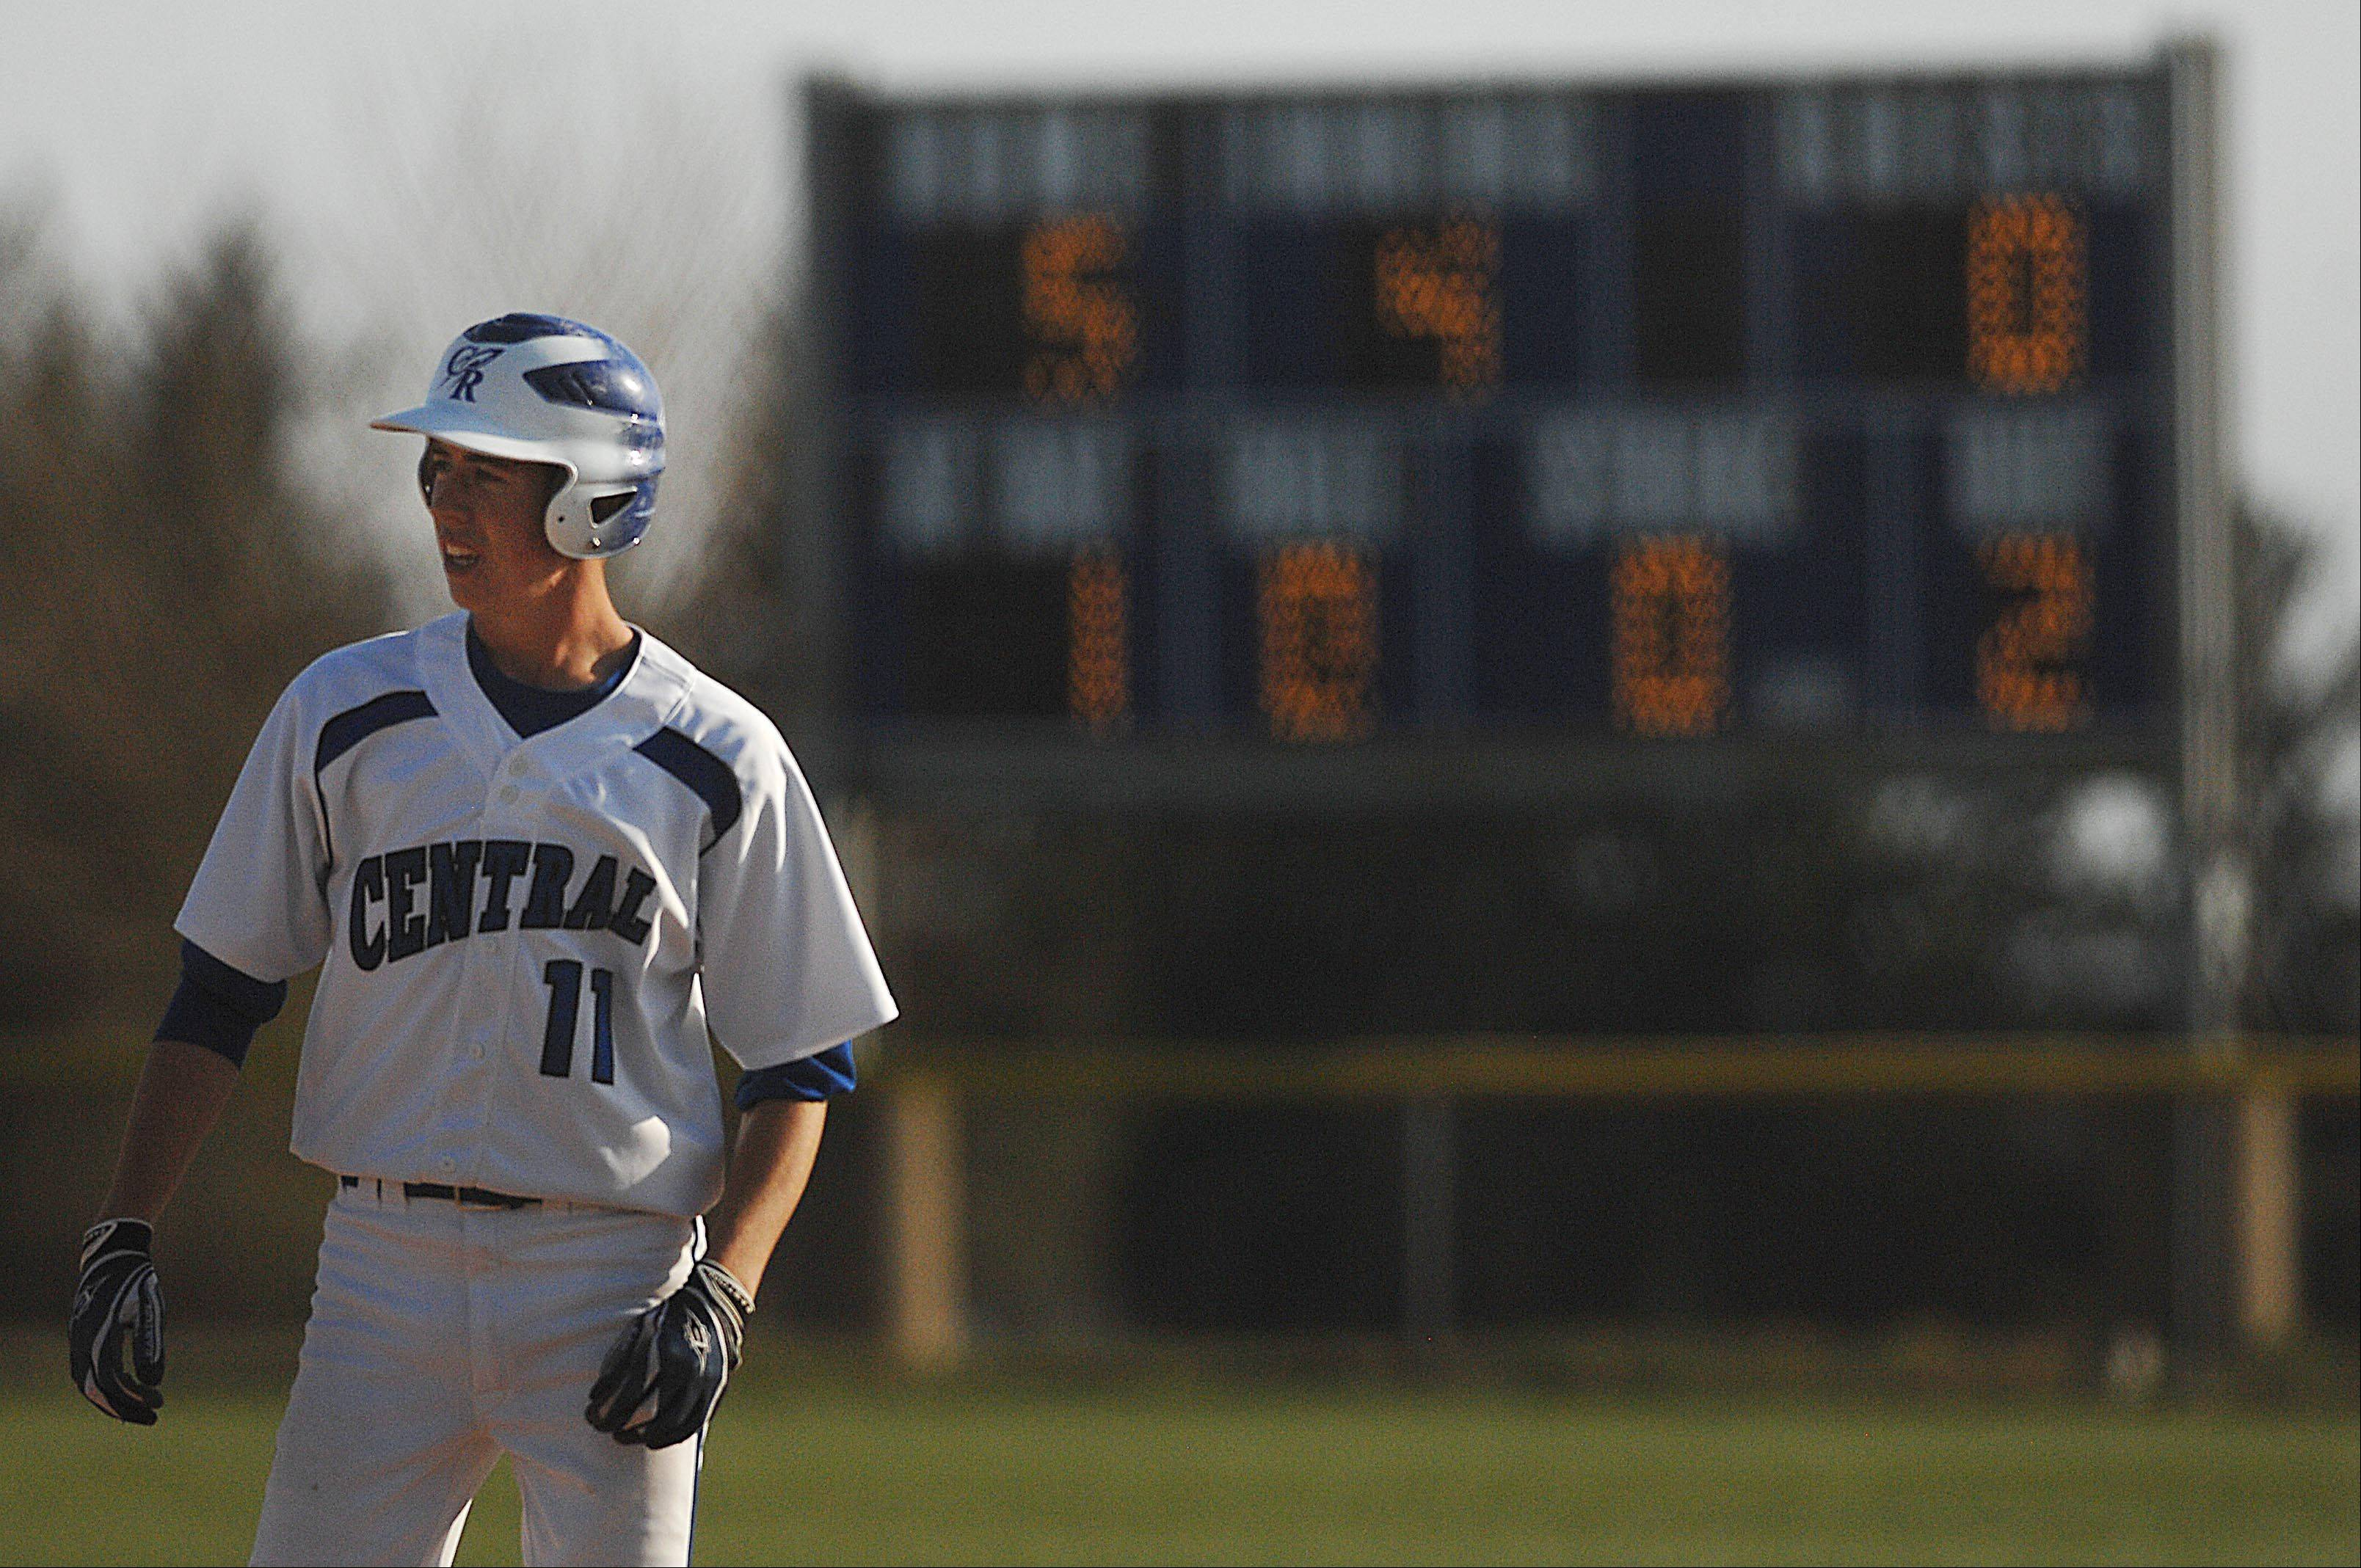 Burlington Central's Riley Jensen stands on first base after getting a base hit with two outs in the fourth inning against Marengo Thursday in Burlington. He was the winning pitcher.